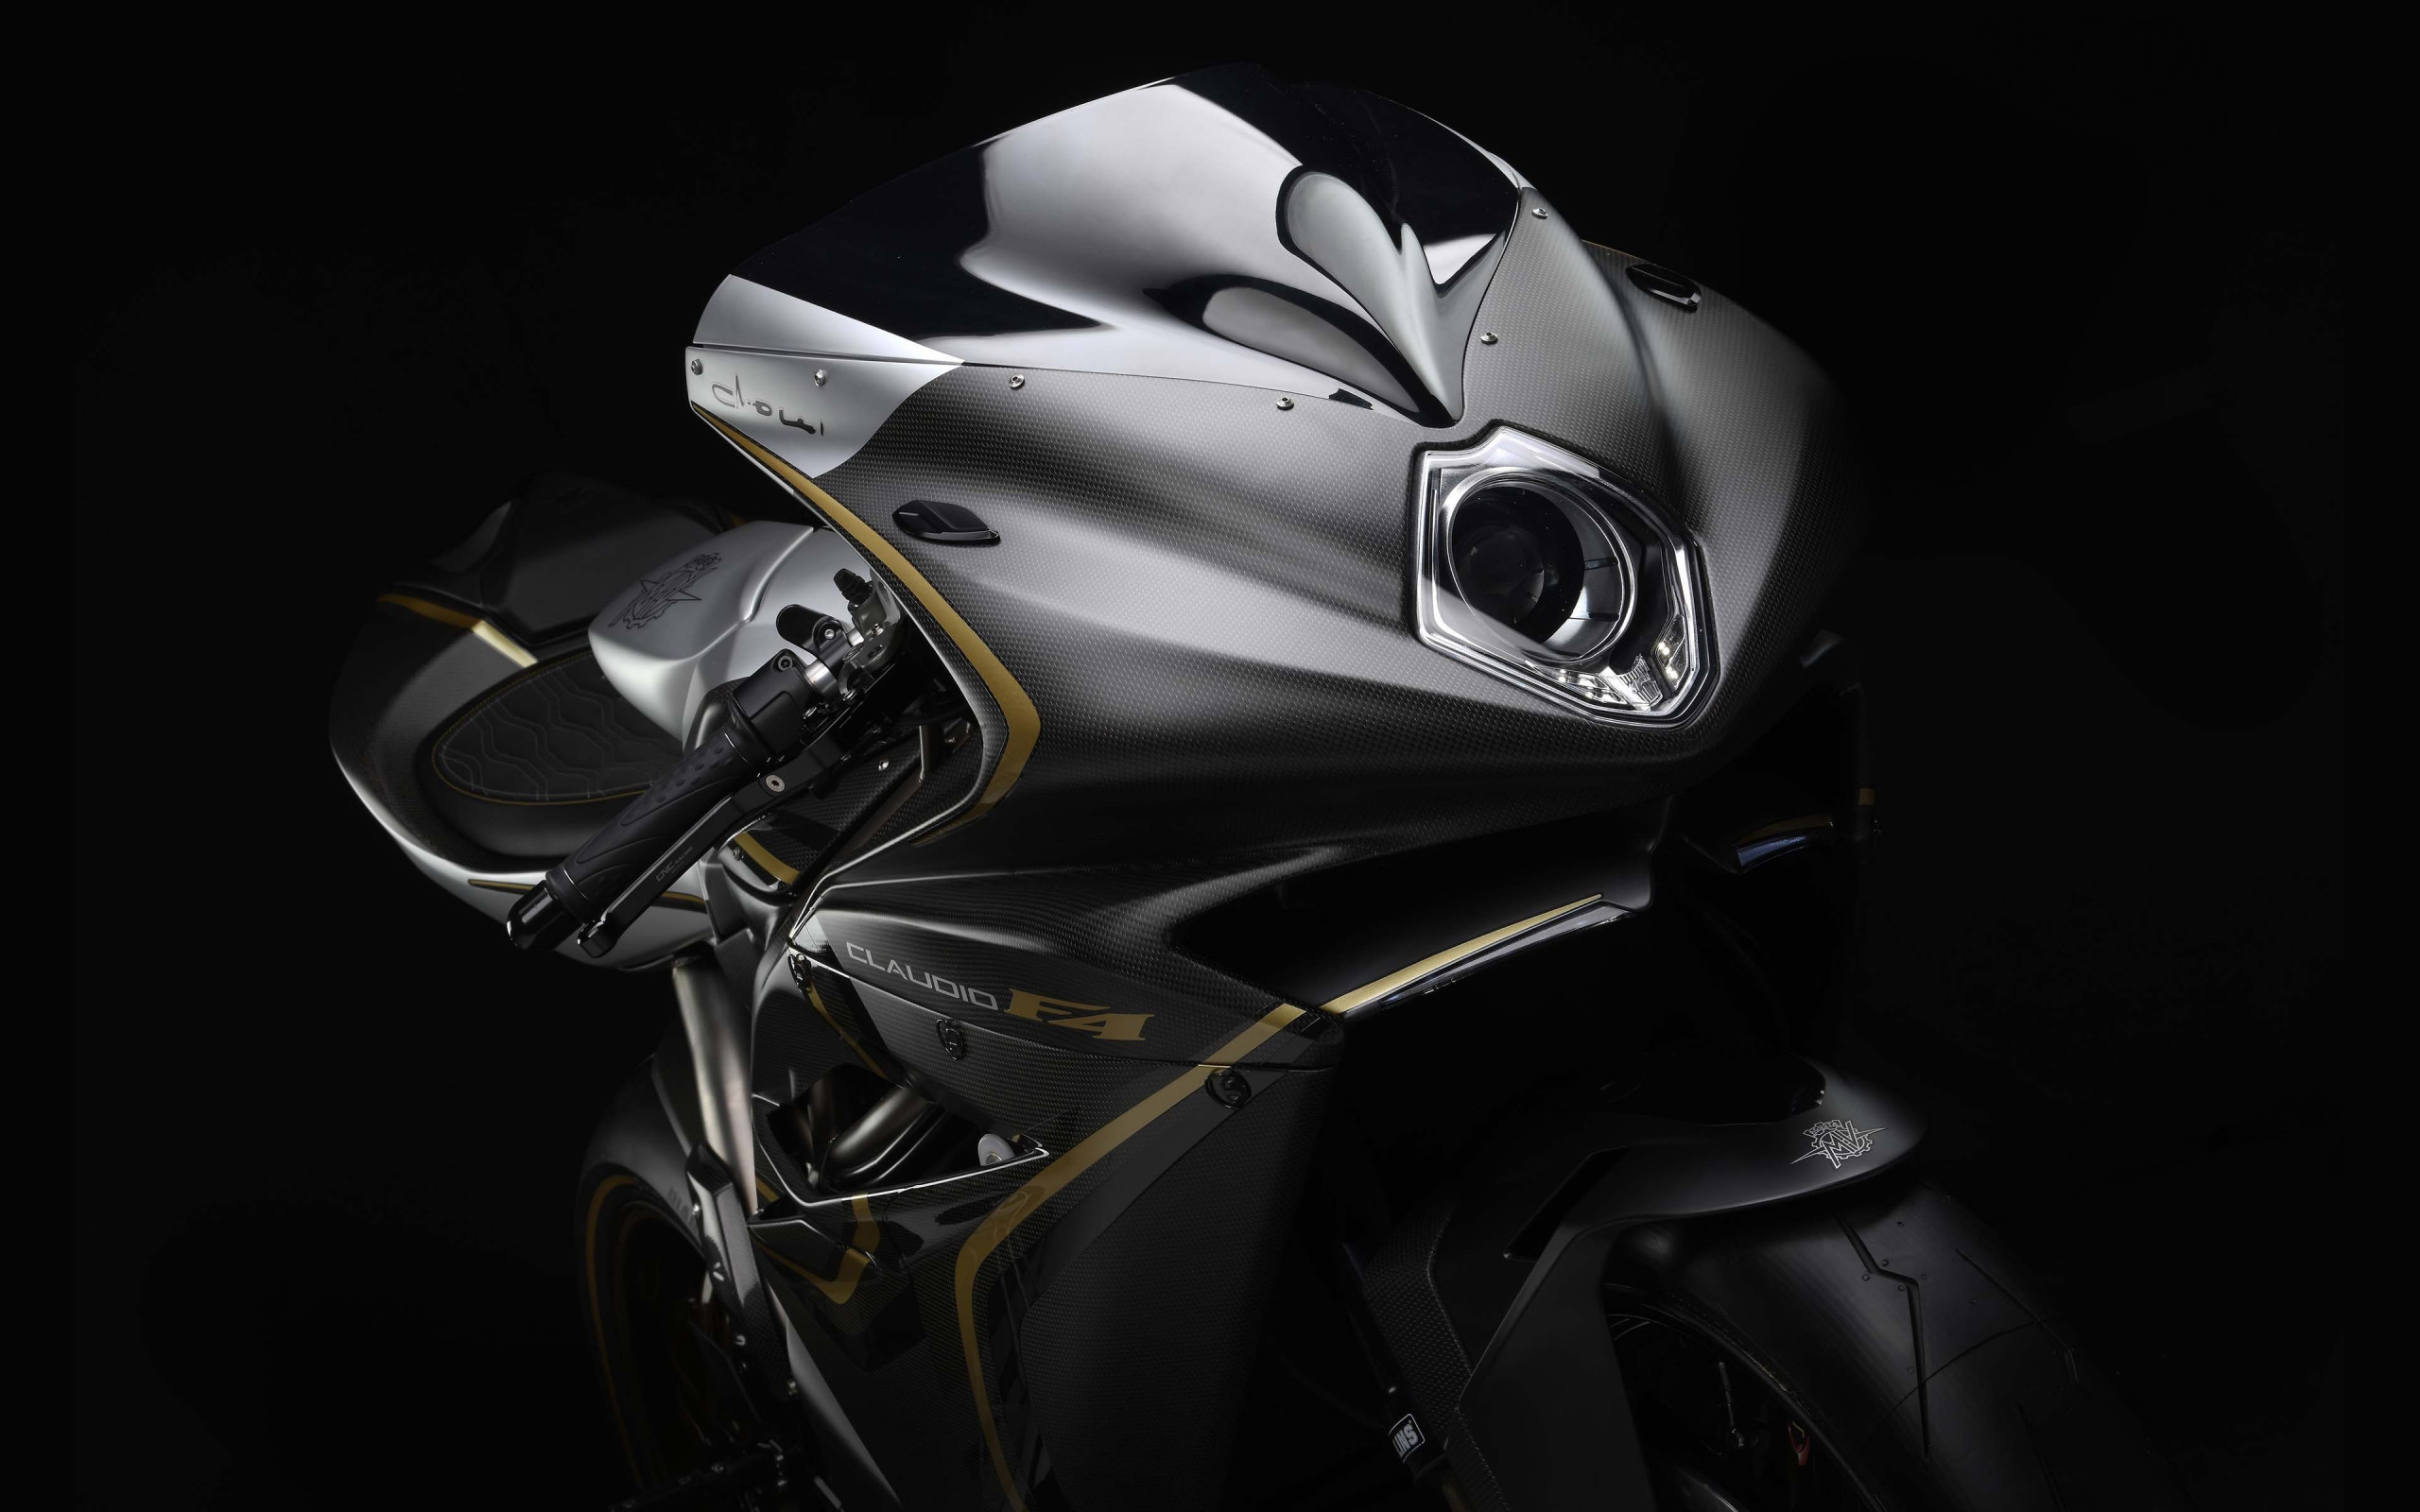 MV Agusta F4 Claudio wallpaper 2560x1600